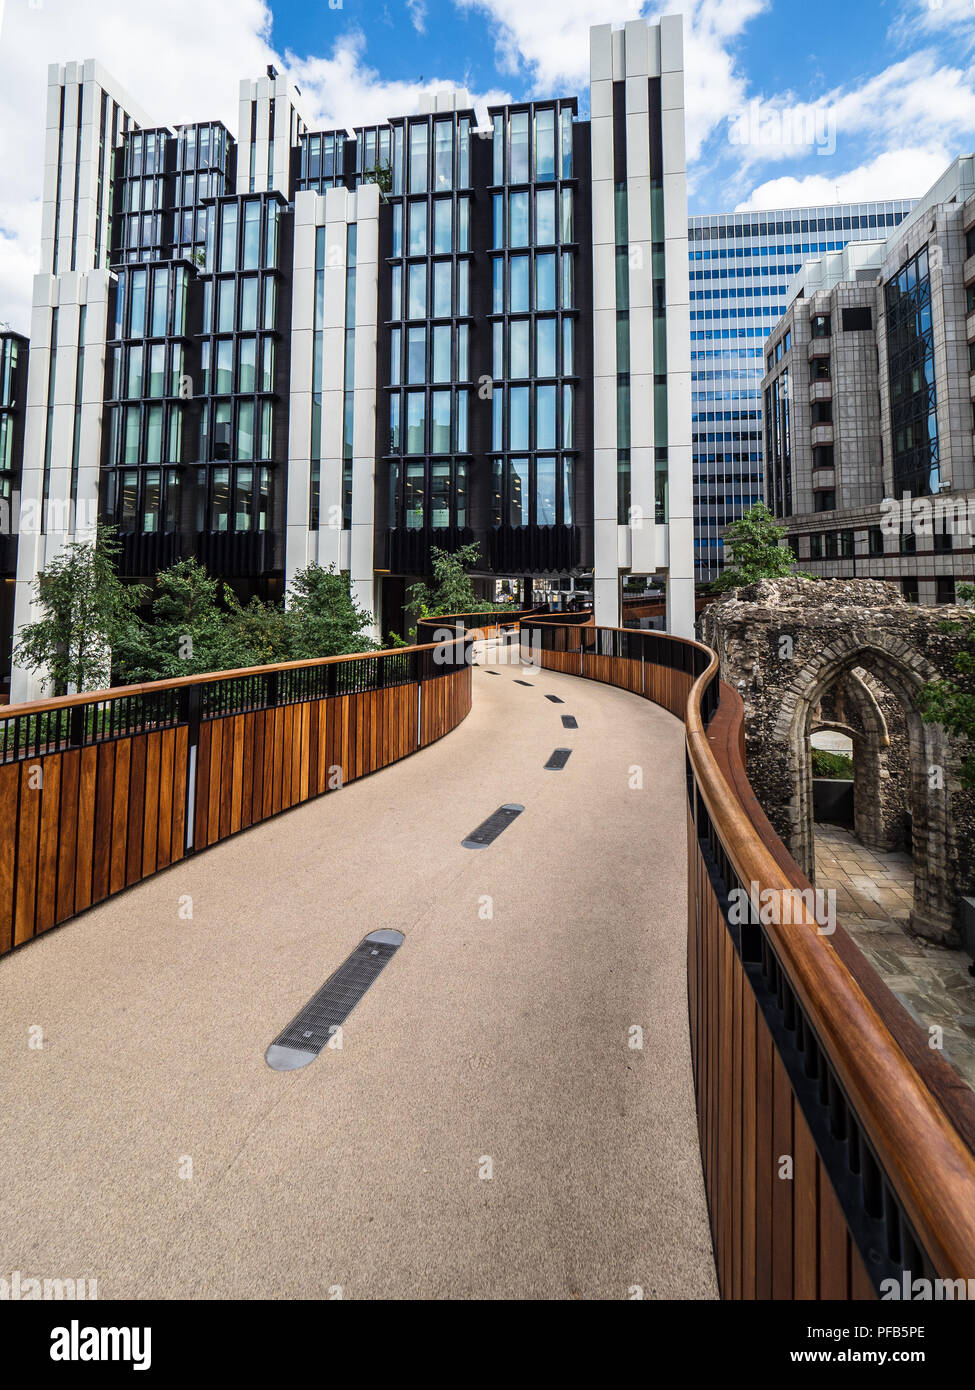 London Walkways - St Alphege's Highwalk Bassishaw Highwalk City of London part of the London Wall Place redevelopment Make Architects Ken Shuttleworth - Stock Image